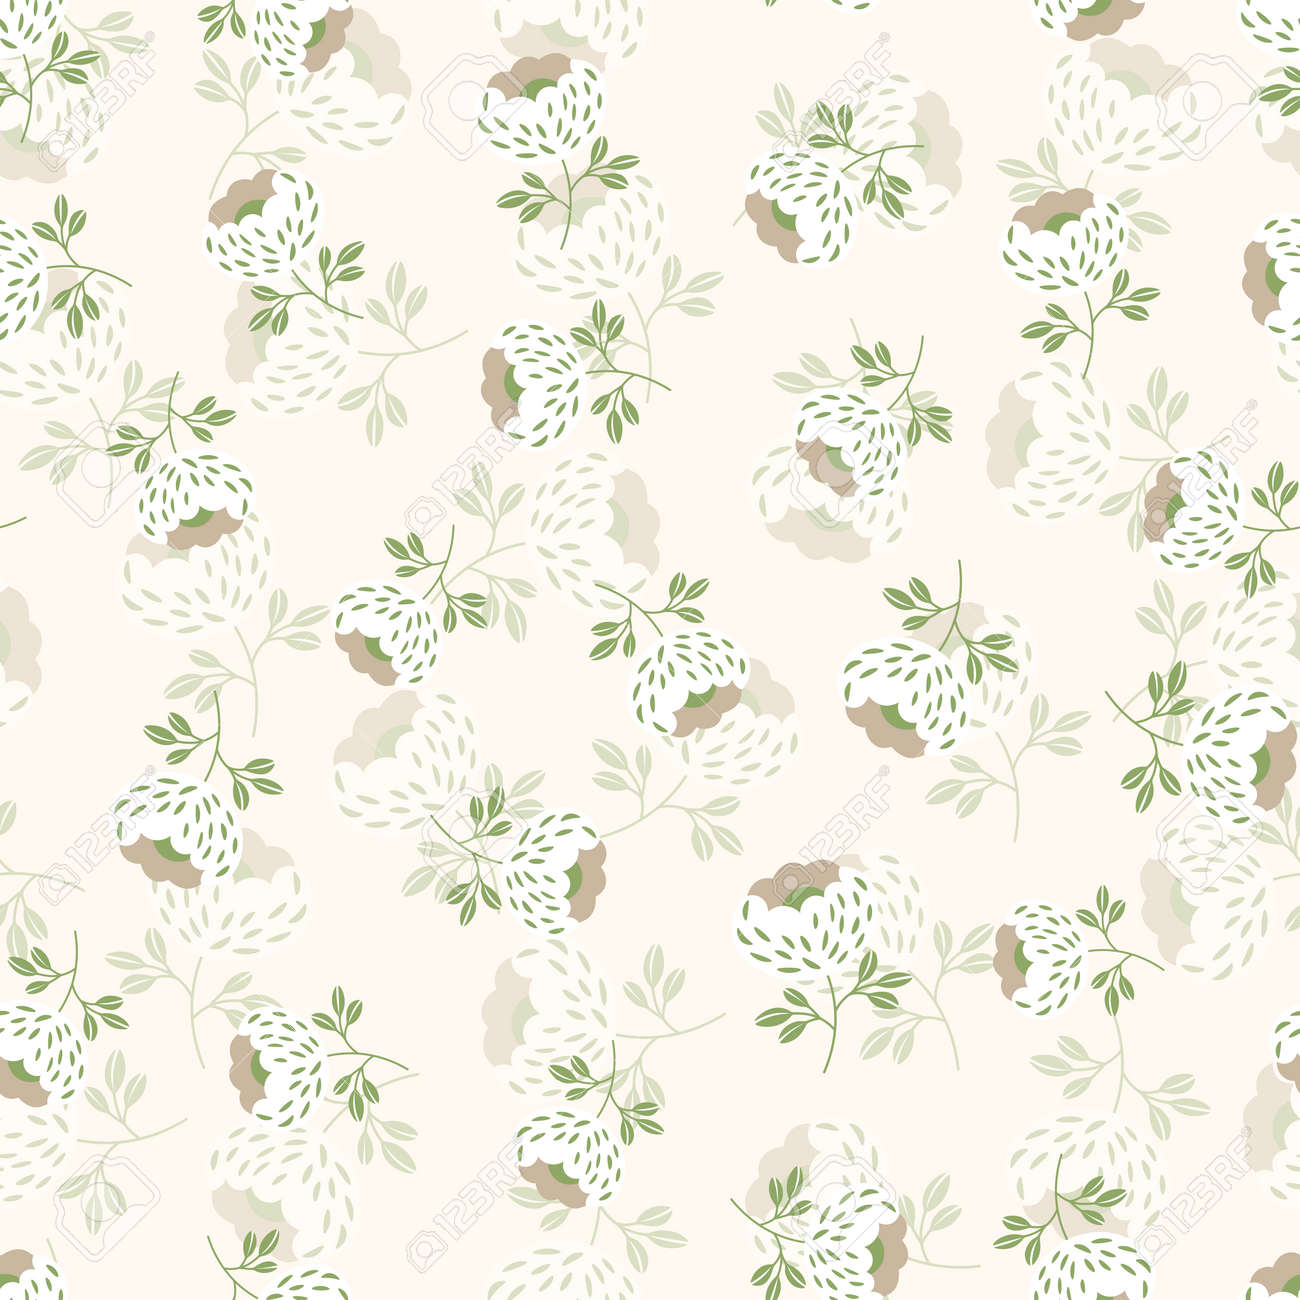 Seamless floral pattern based on traditional folk art ornaments. Colorful flowers on light background. Scandinavian style. Sweden nordic style. Vector illustration. Simple minimalistic pattern. - 164450371